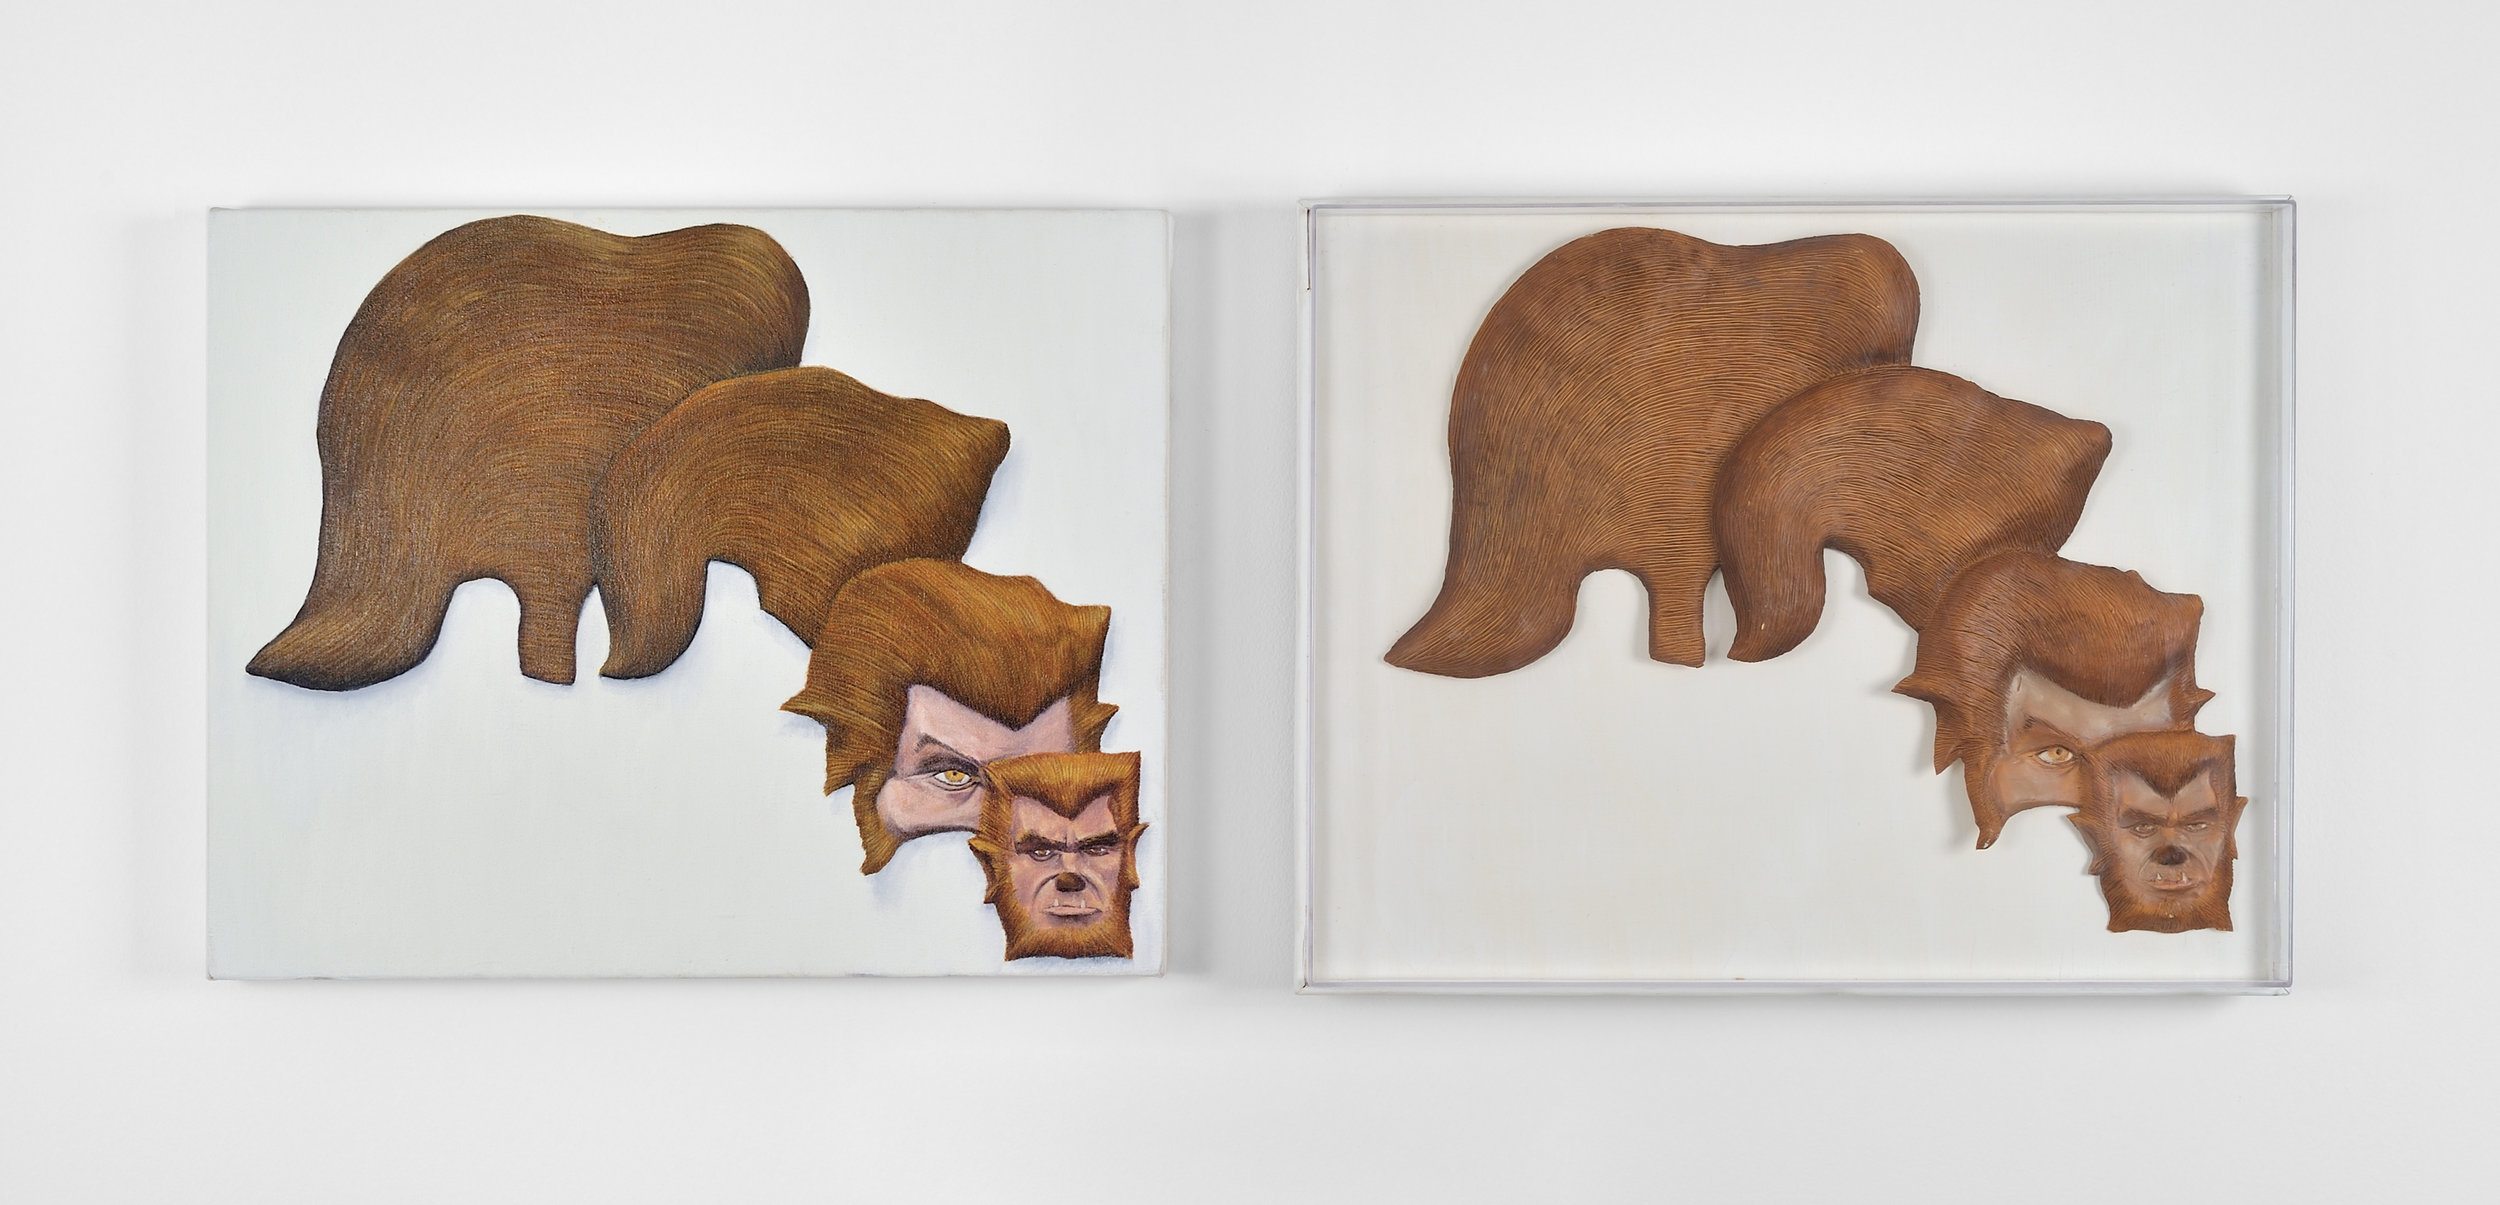 "Dream Object (""I had to get off the hiway in Texas... Inside a thrift store were a succession of partial heads vac u formed that grew from a juvenile delinquent to a vampire & a J.D. Duck tail hairdo shrunk into a werewolf...""), 1998 oil on canvas, wood, plexiglas, latex, lacquer 42 x 53 x 6 cm - 16 1/2 x 20 7/8 x 2 3/8 inches (each panel) (framed)"